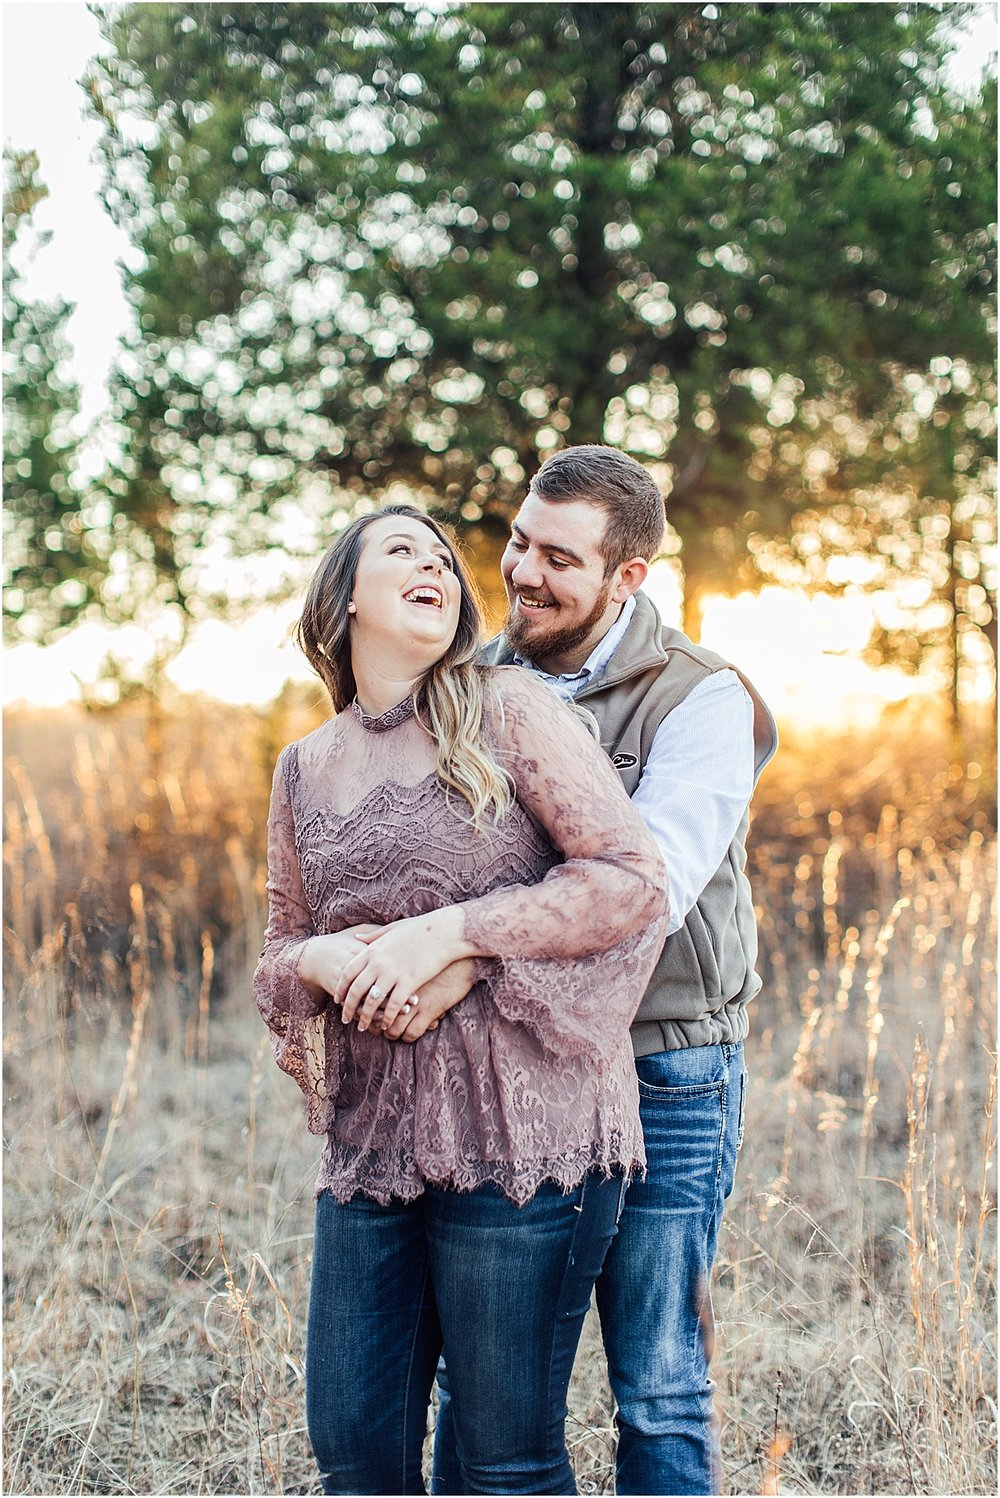 nashville wedding photographer, nashville engagement pictures, wedding photographer, birmingham wedding photographer, field engagement pictures, lindsey ann photography